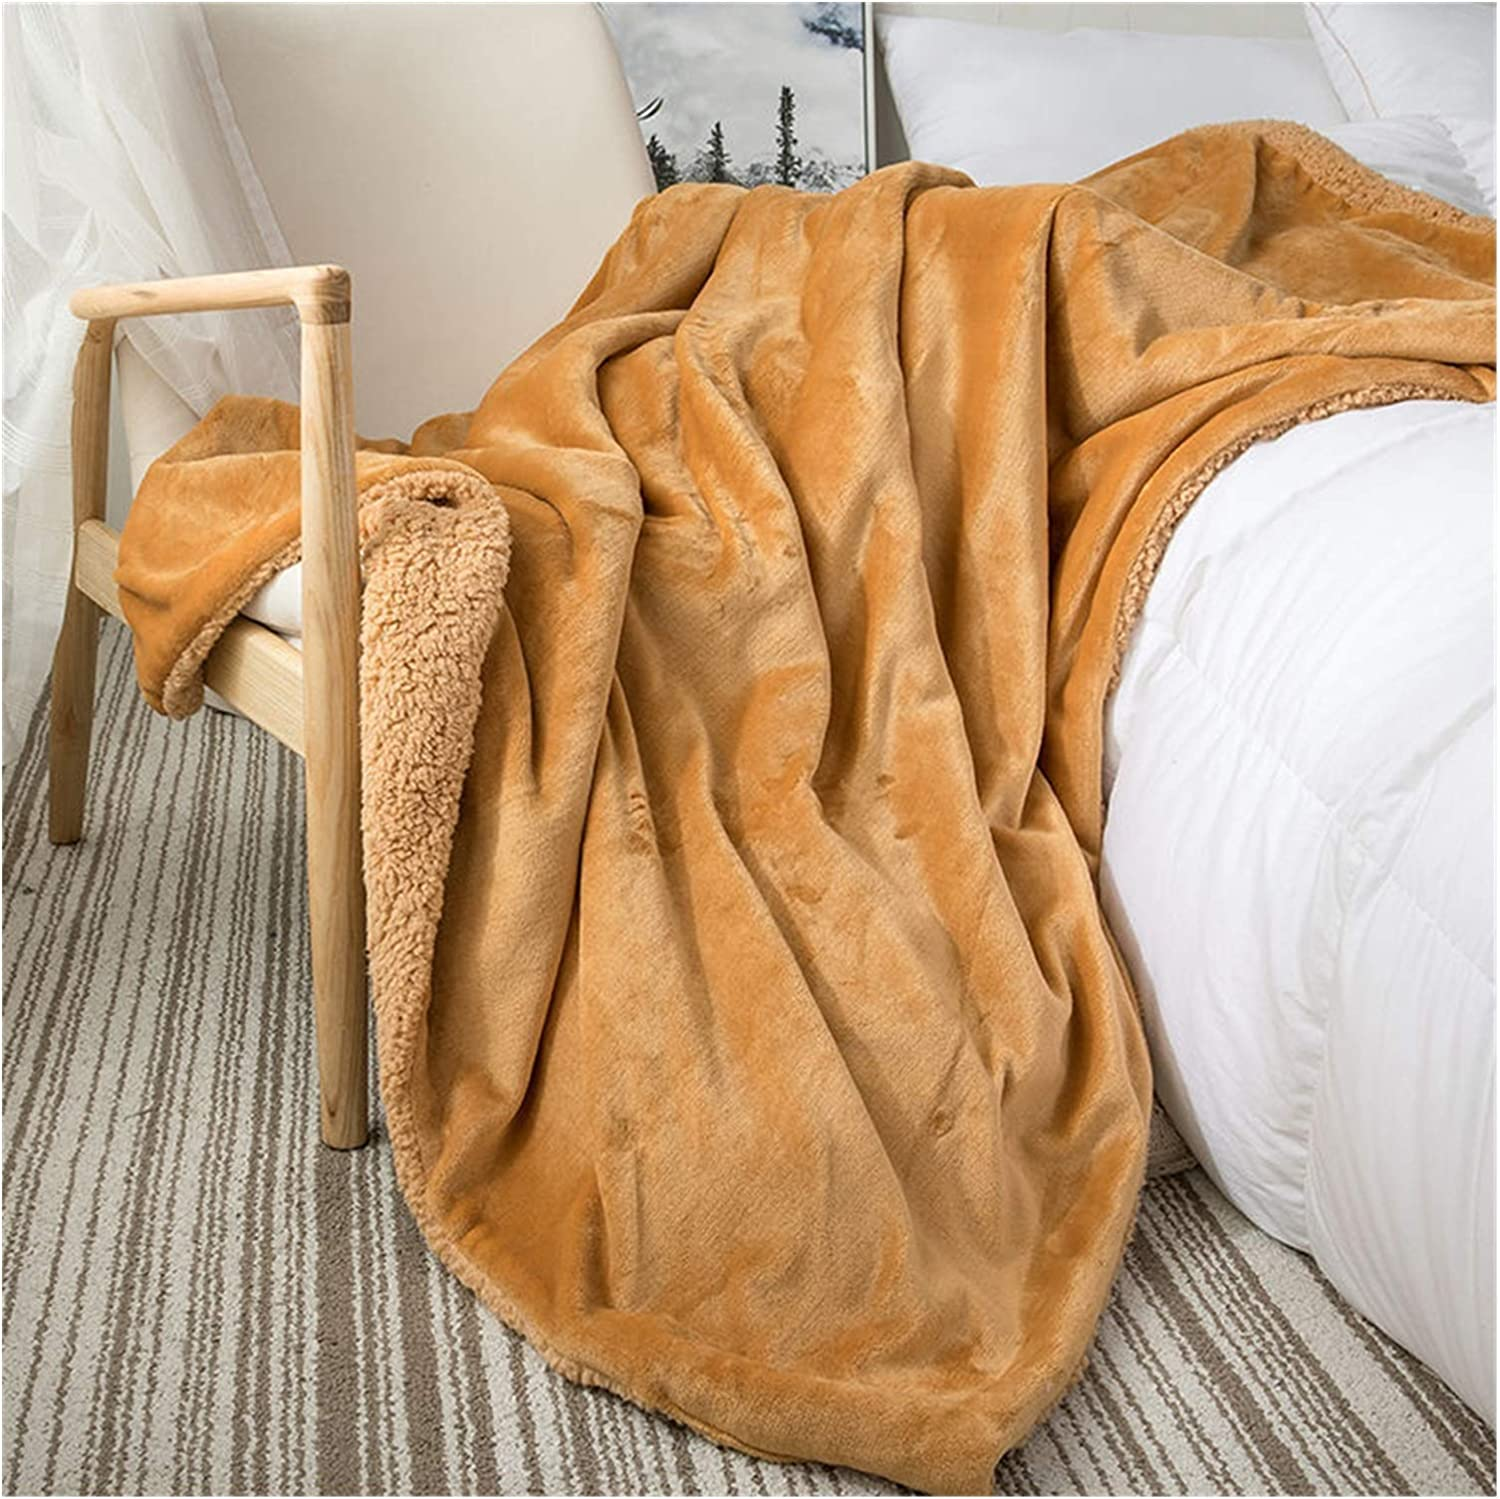 JDJD OFFicial site Weighted Flannel Fleece Blanket Winter Soft Adult Thick She Sales of SALE items from new works